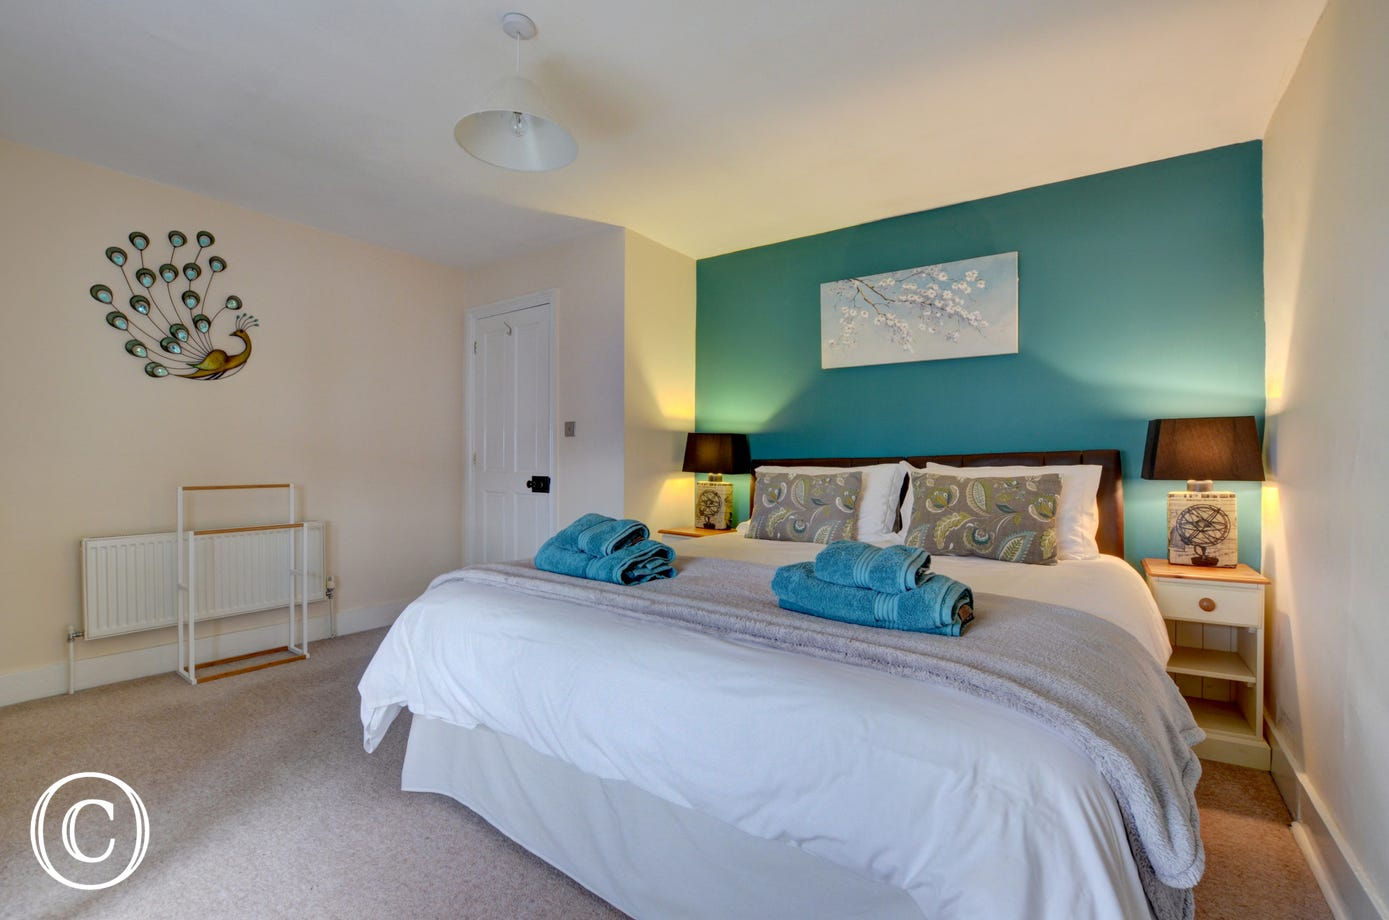 Luxurious superking size bed in the colourful master bedroom